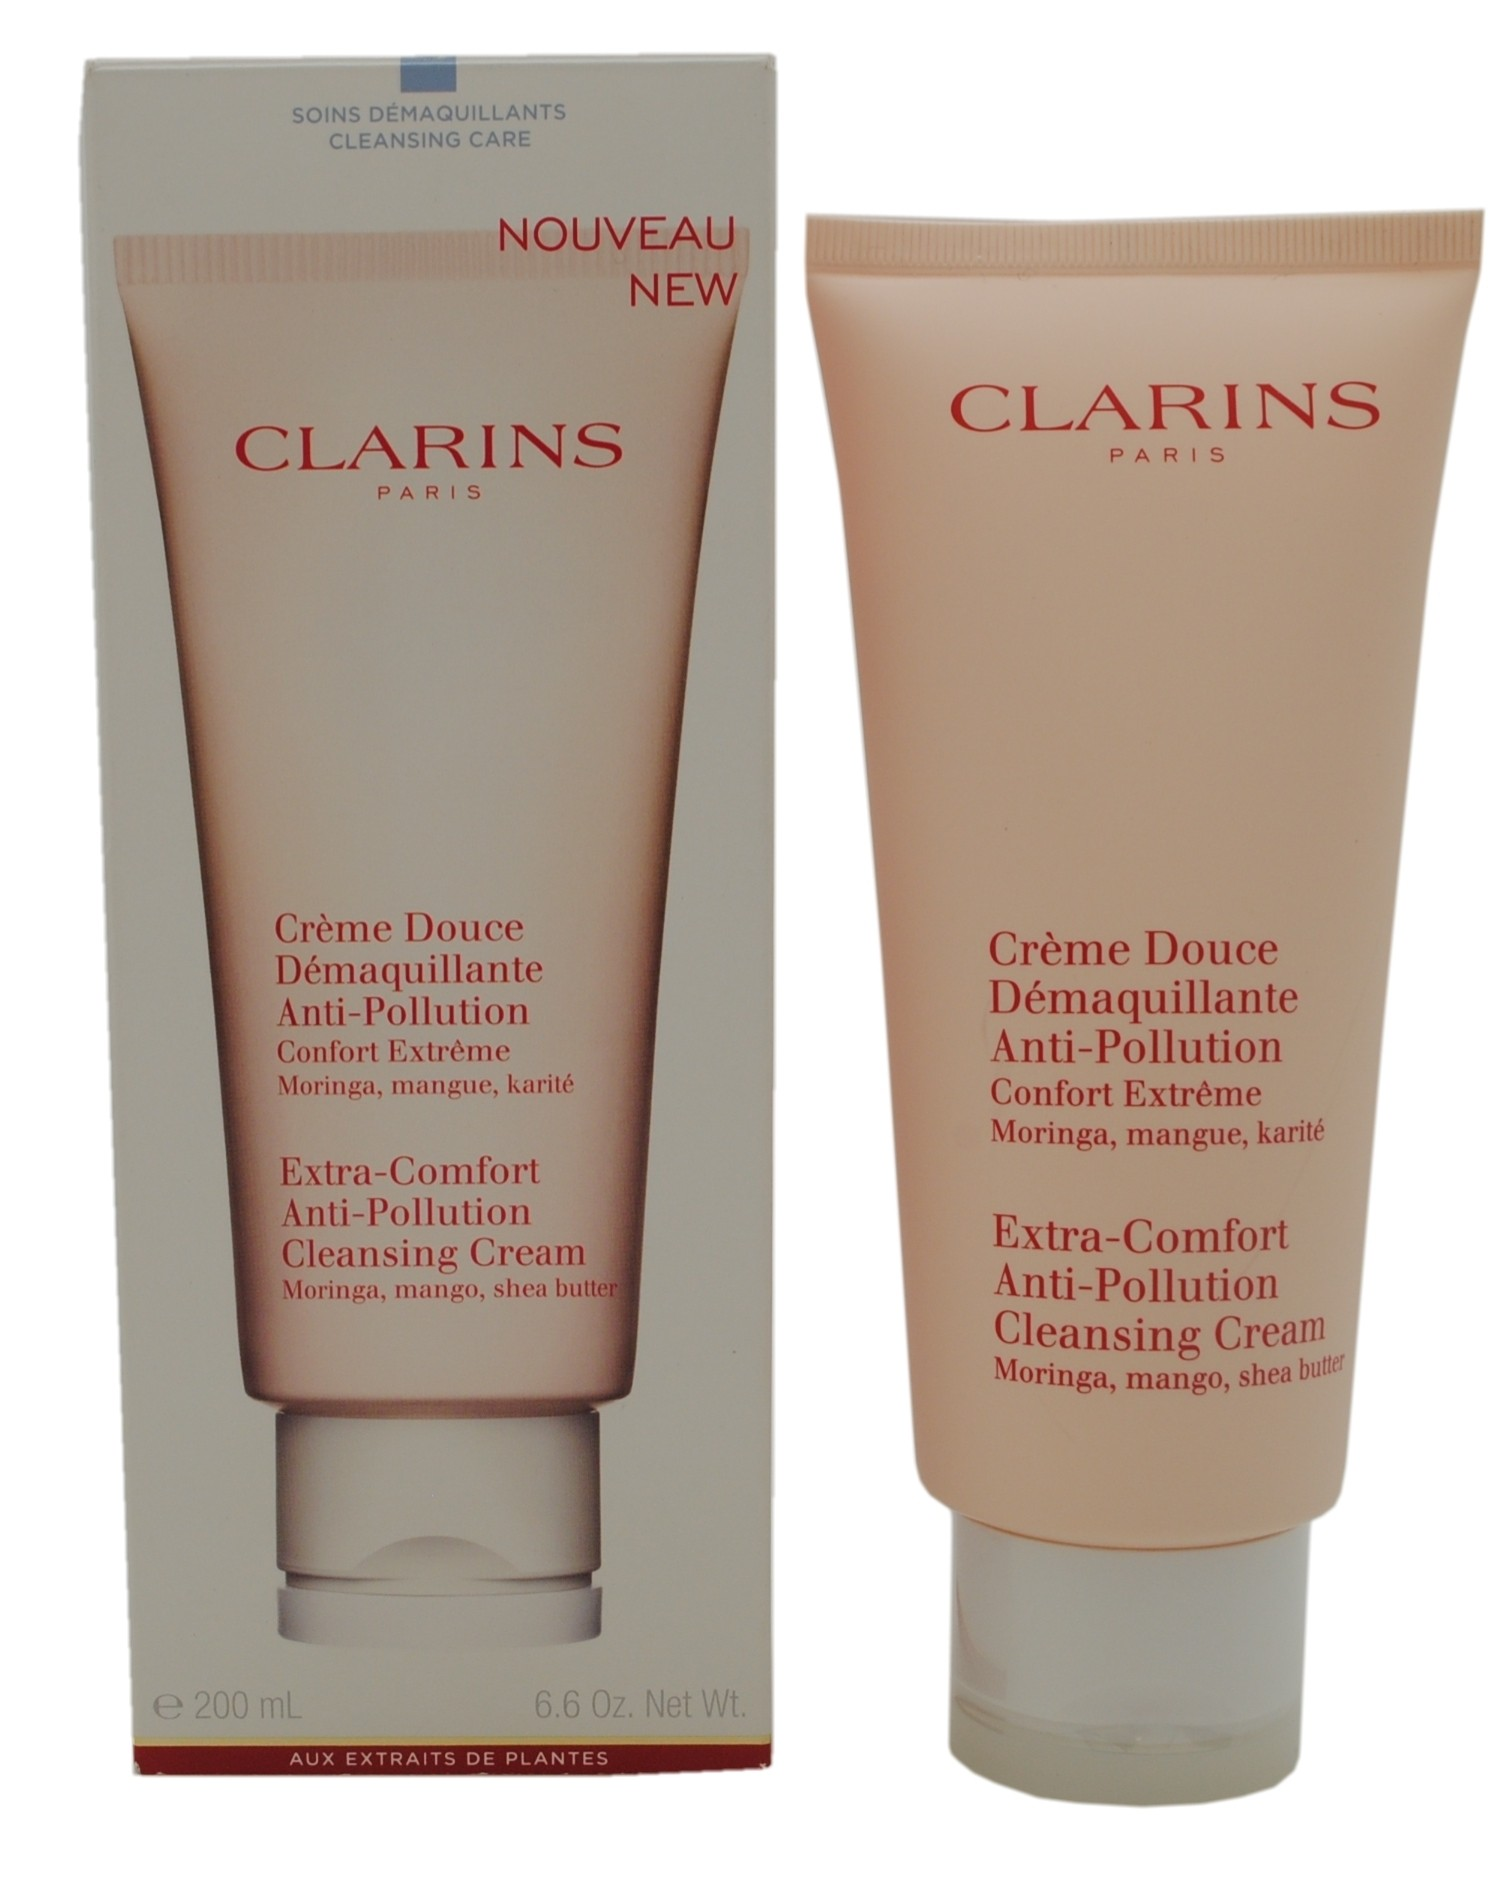 Clarin's Extra-Comfort Anti-Pollution Cleansing Cream